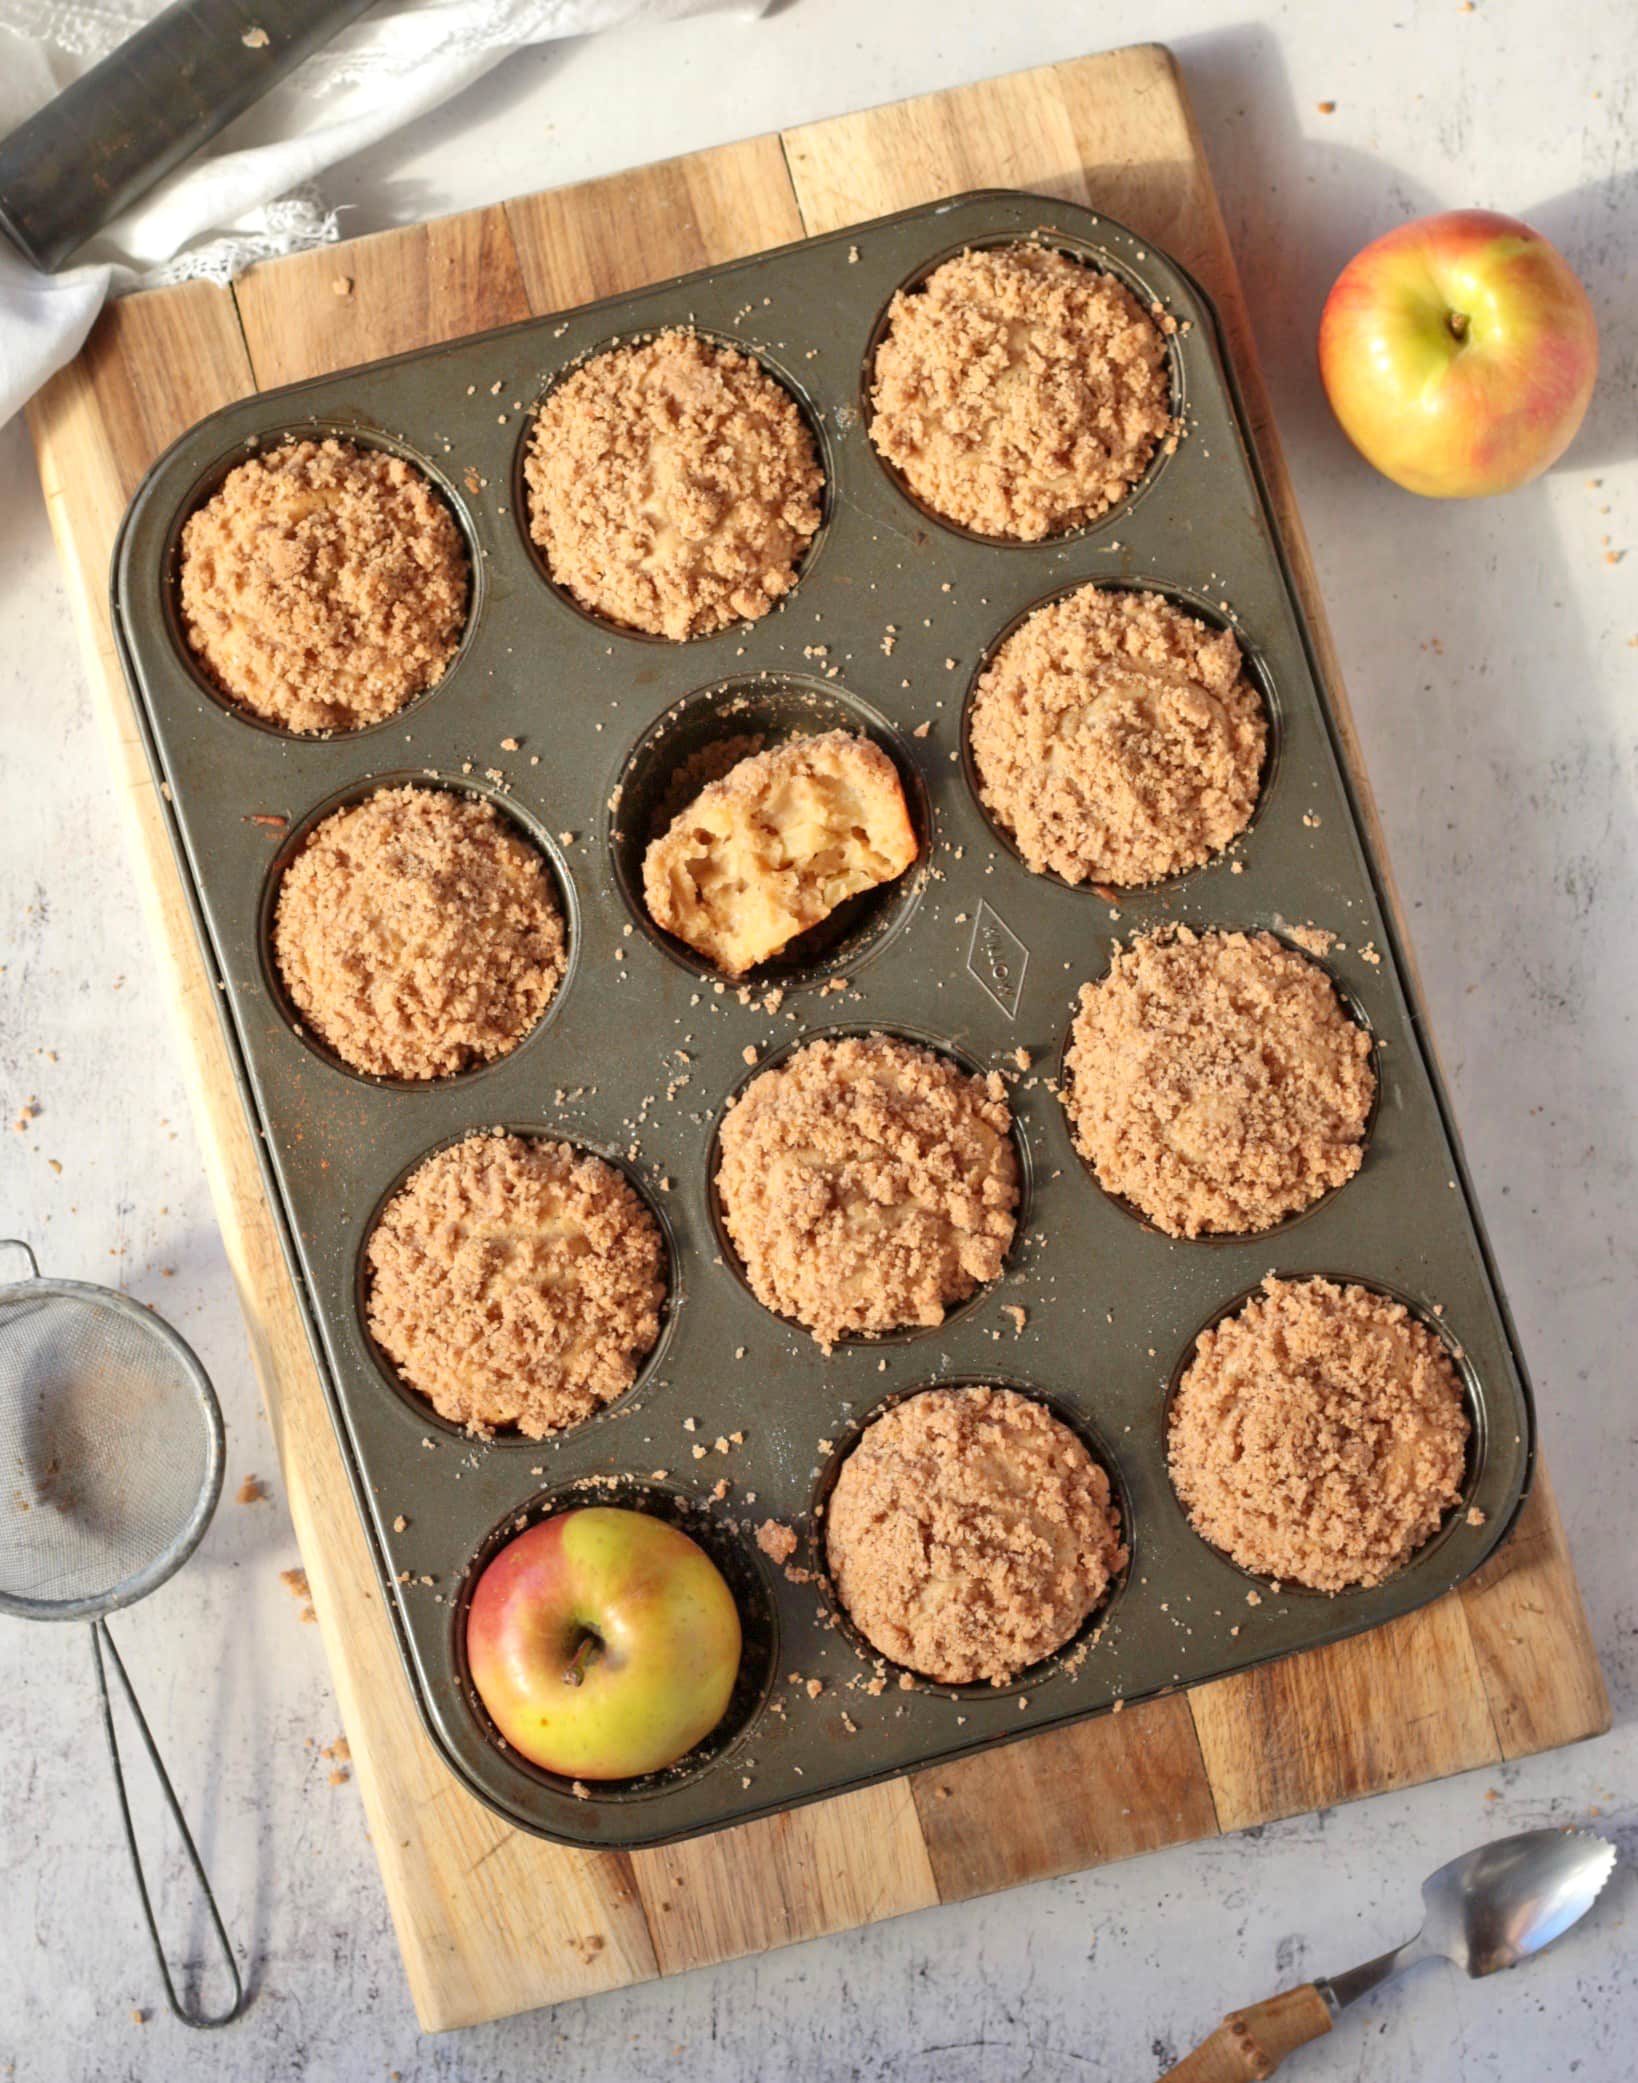 Streusel Muffins from above in the baking pan